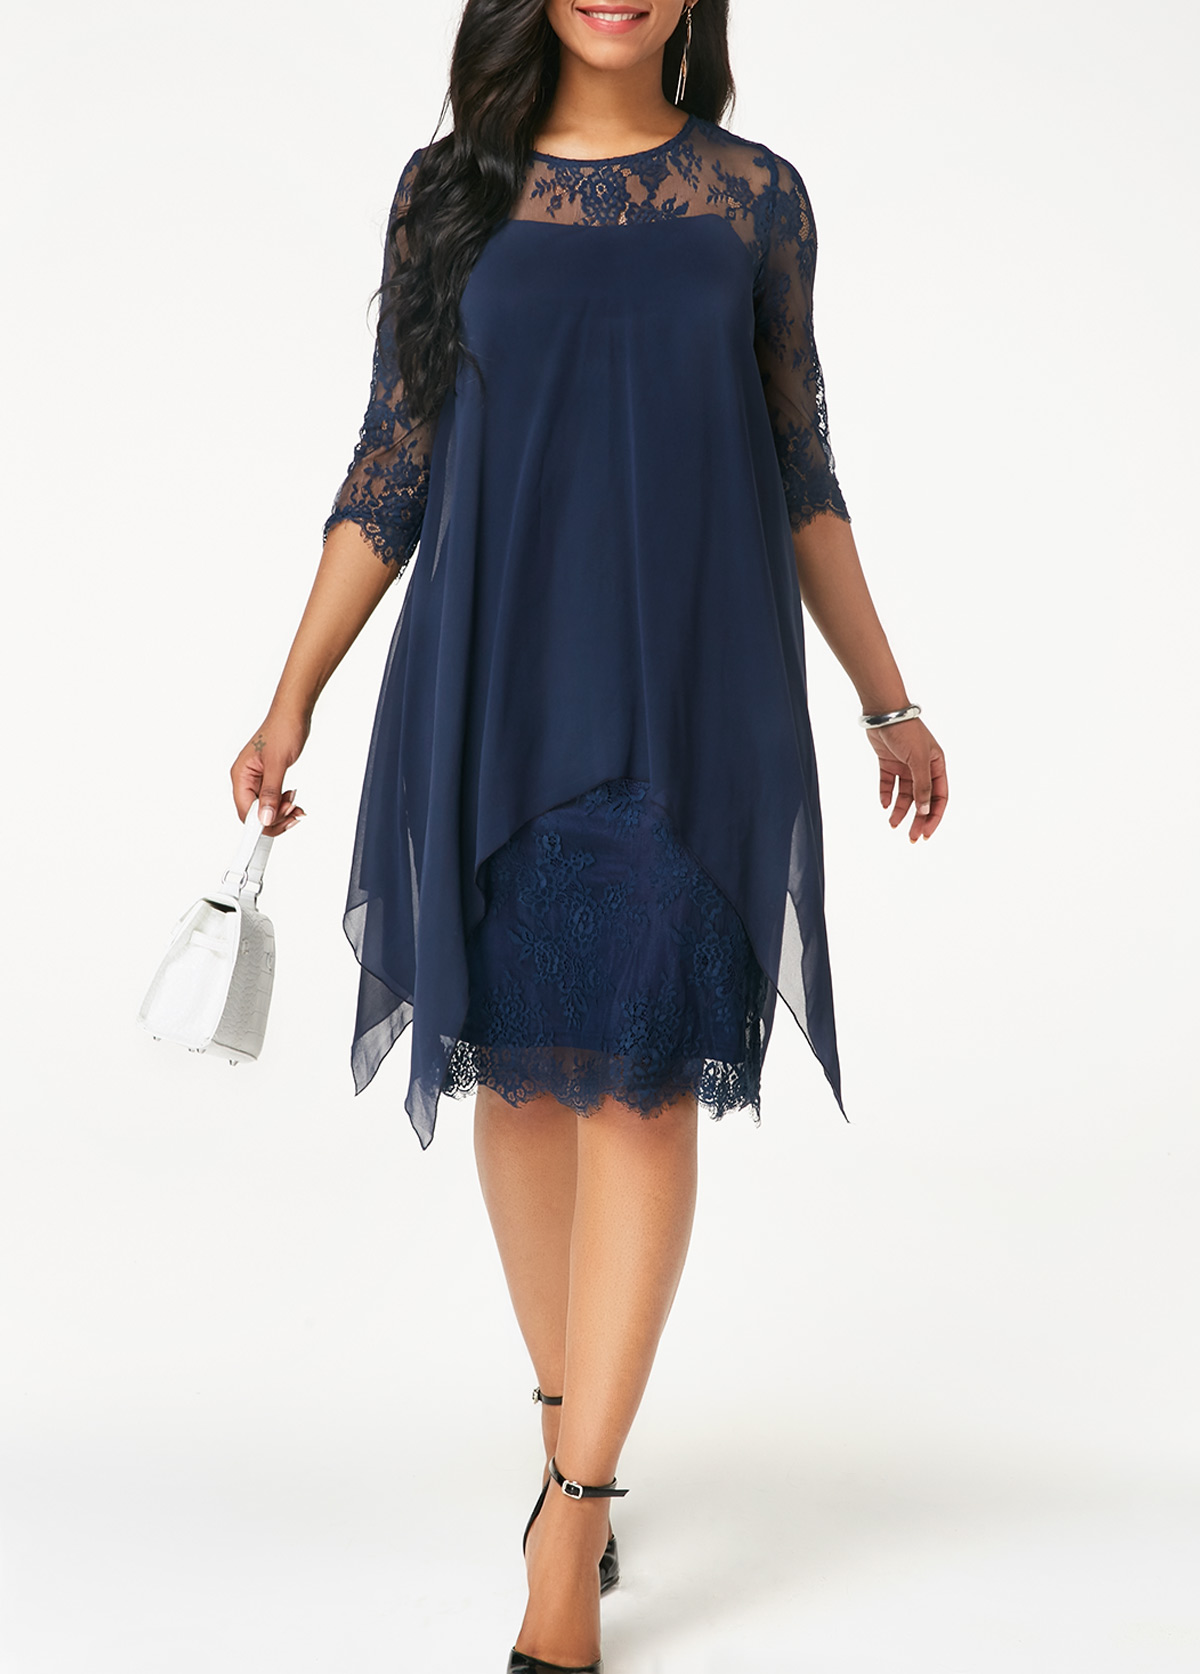 0d88740e62c0 Three Quarter Sleeve Chiffon Overlay Navy Lace Dress